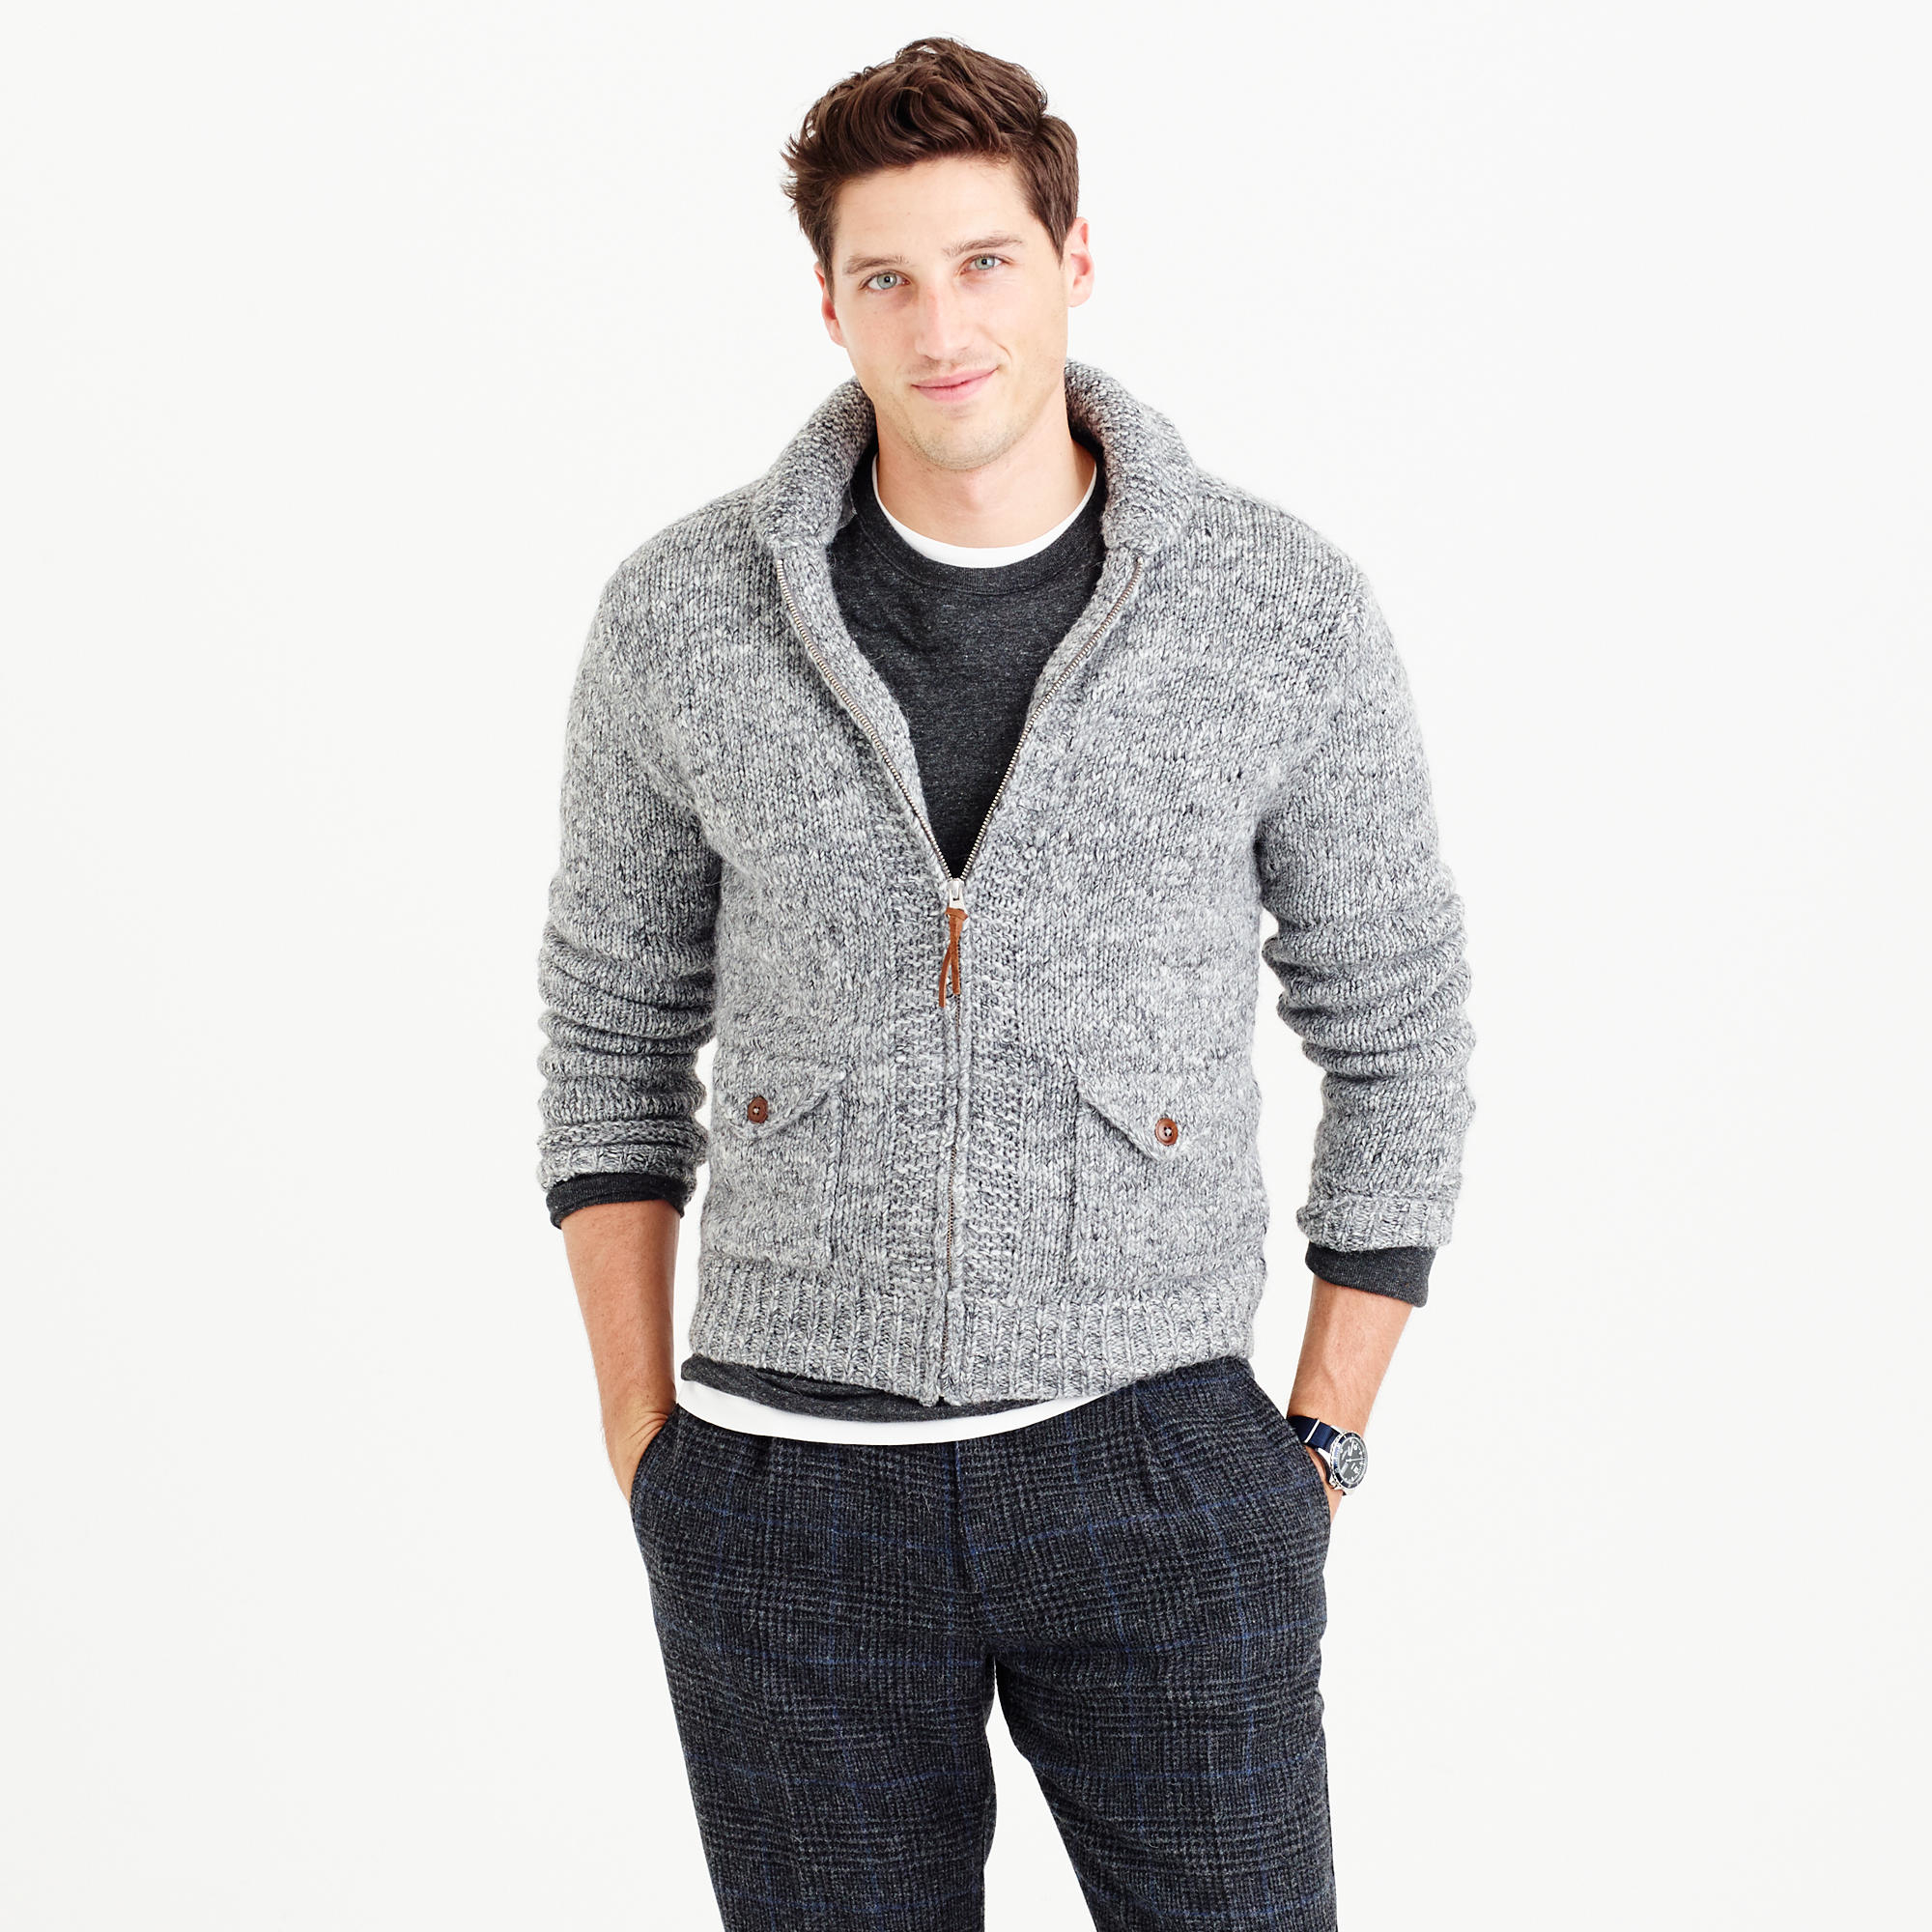 J.crew Wool-alpaca Shawl-collar Zip-up Cardigan Sweater in Black ...